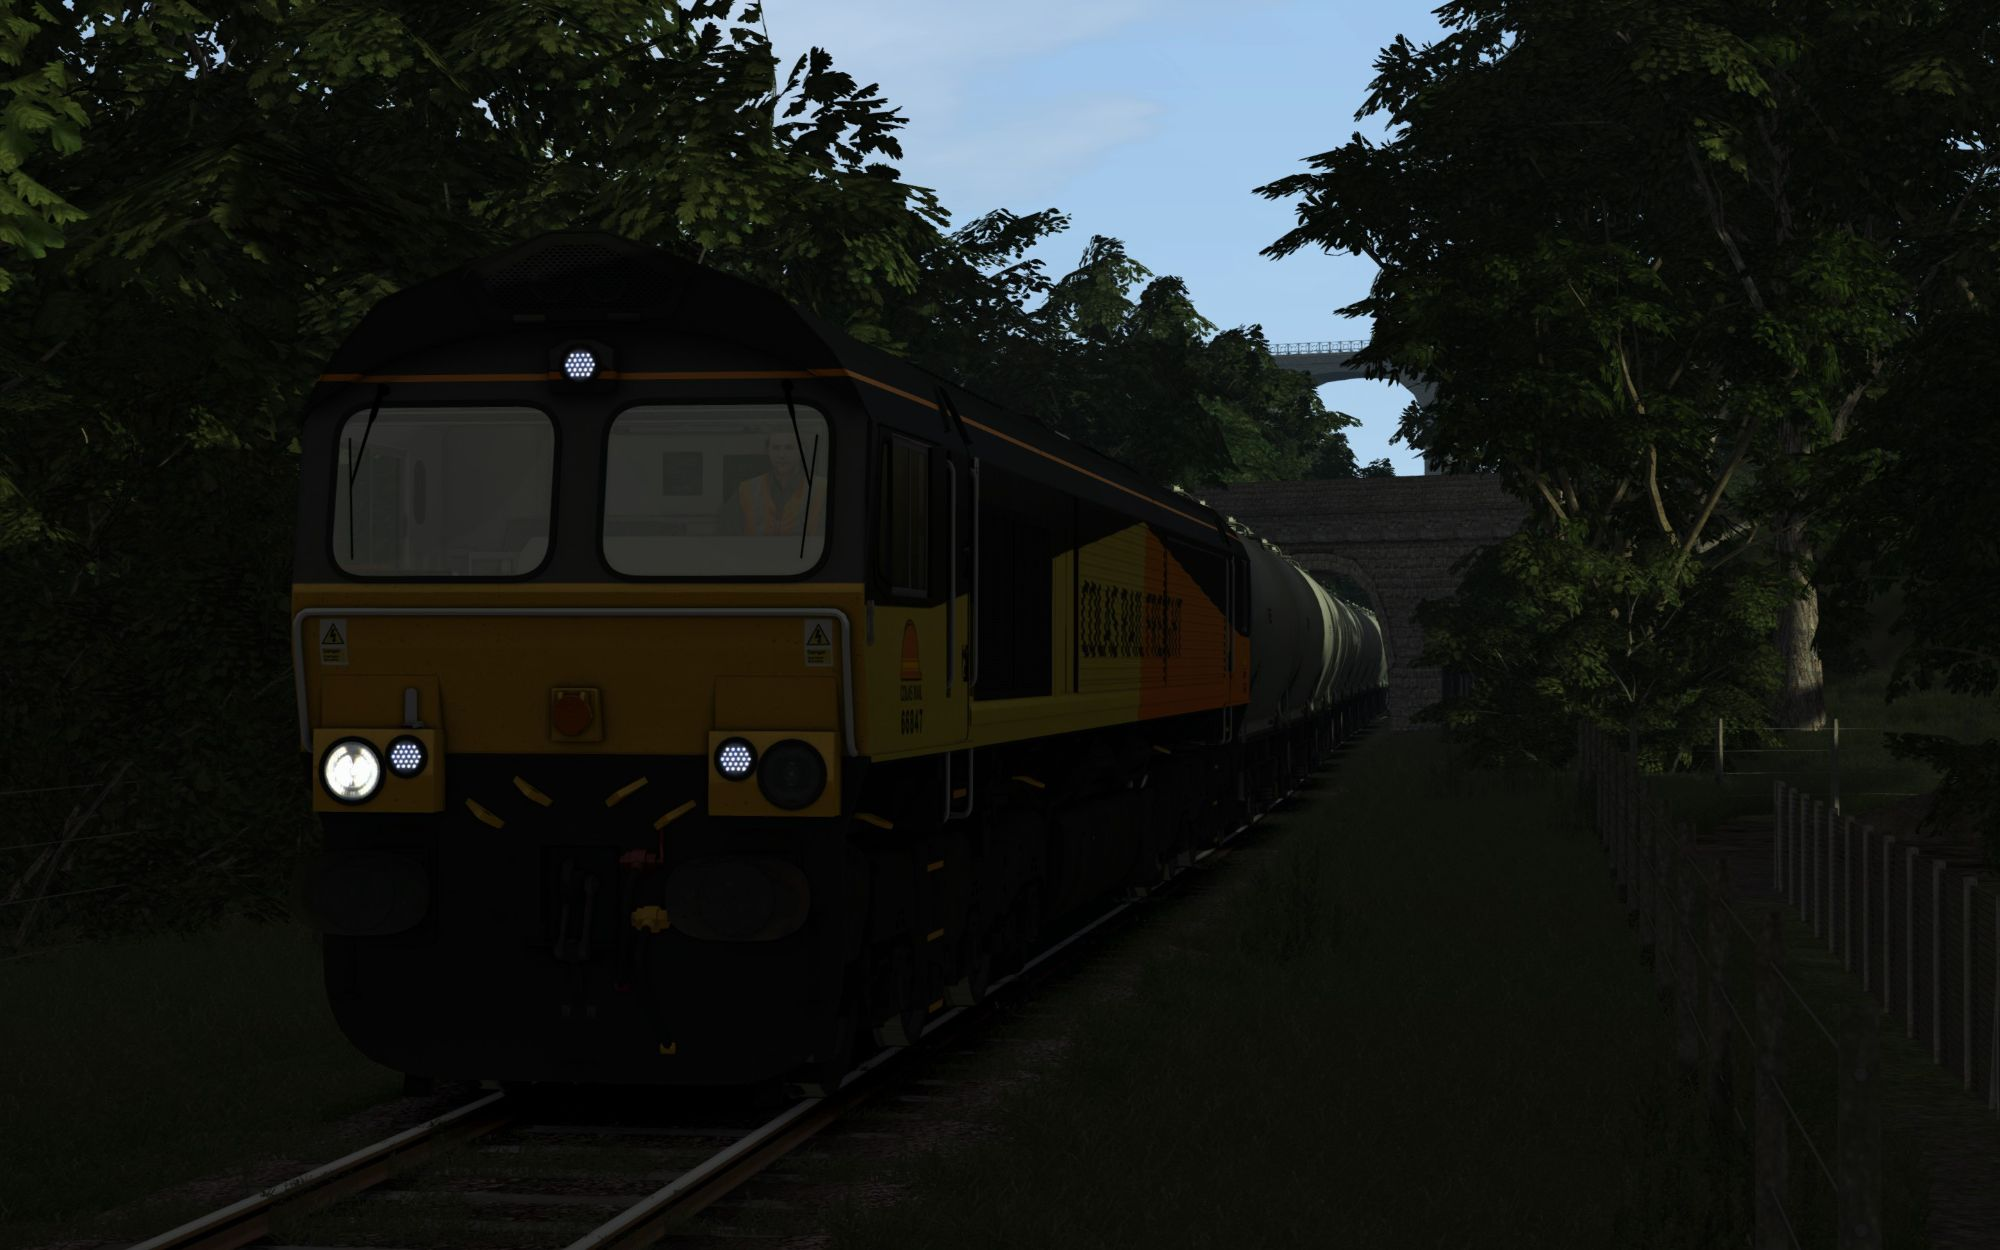 Image showing screenshot of the 6C36 - 0625 Moorswater to Aberthaw Part 1 scenario